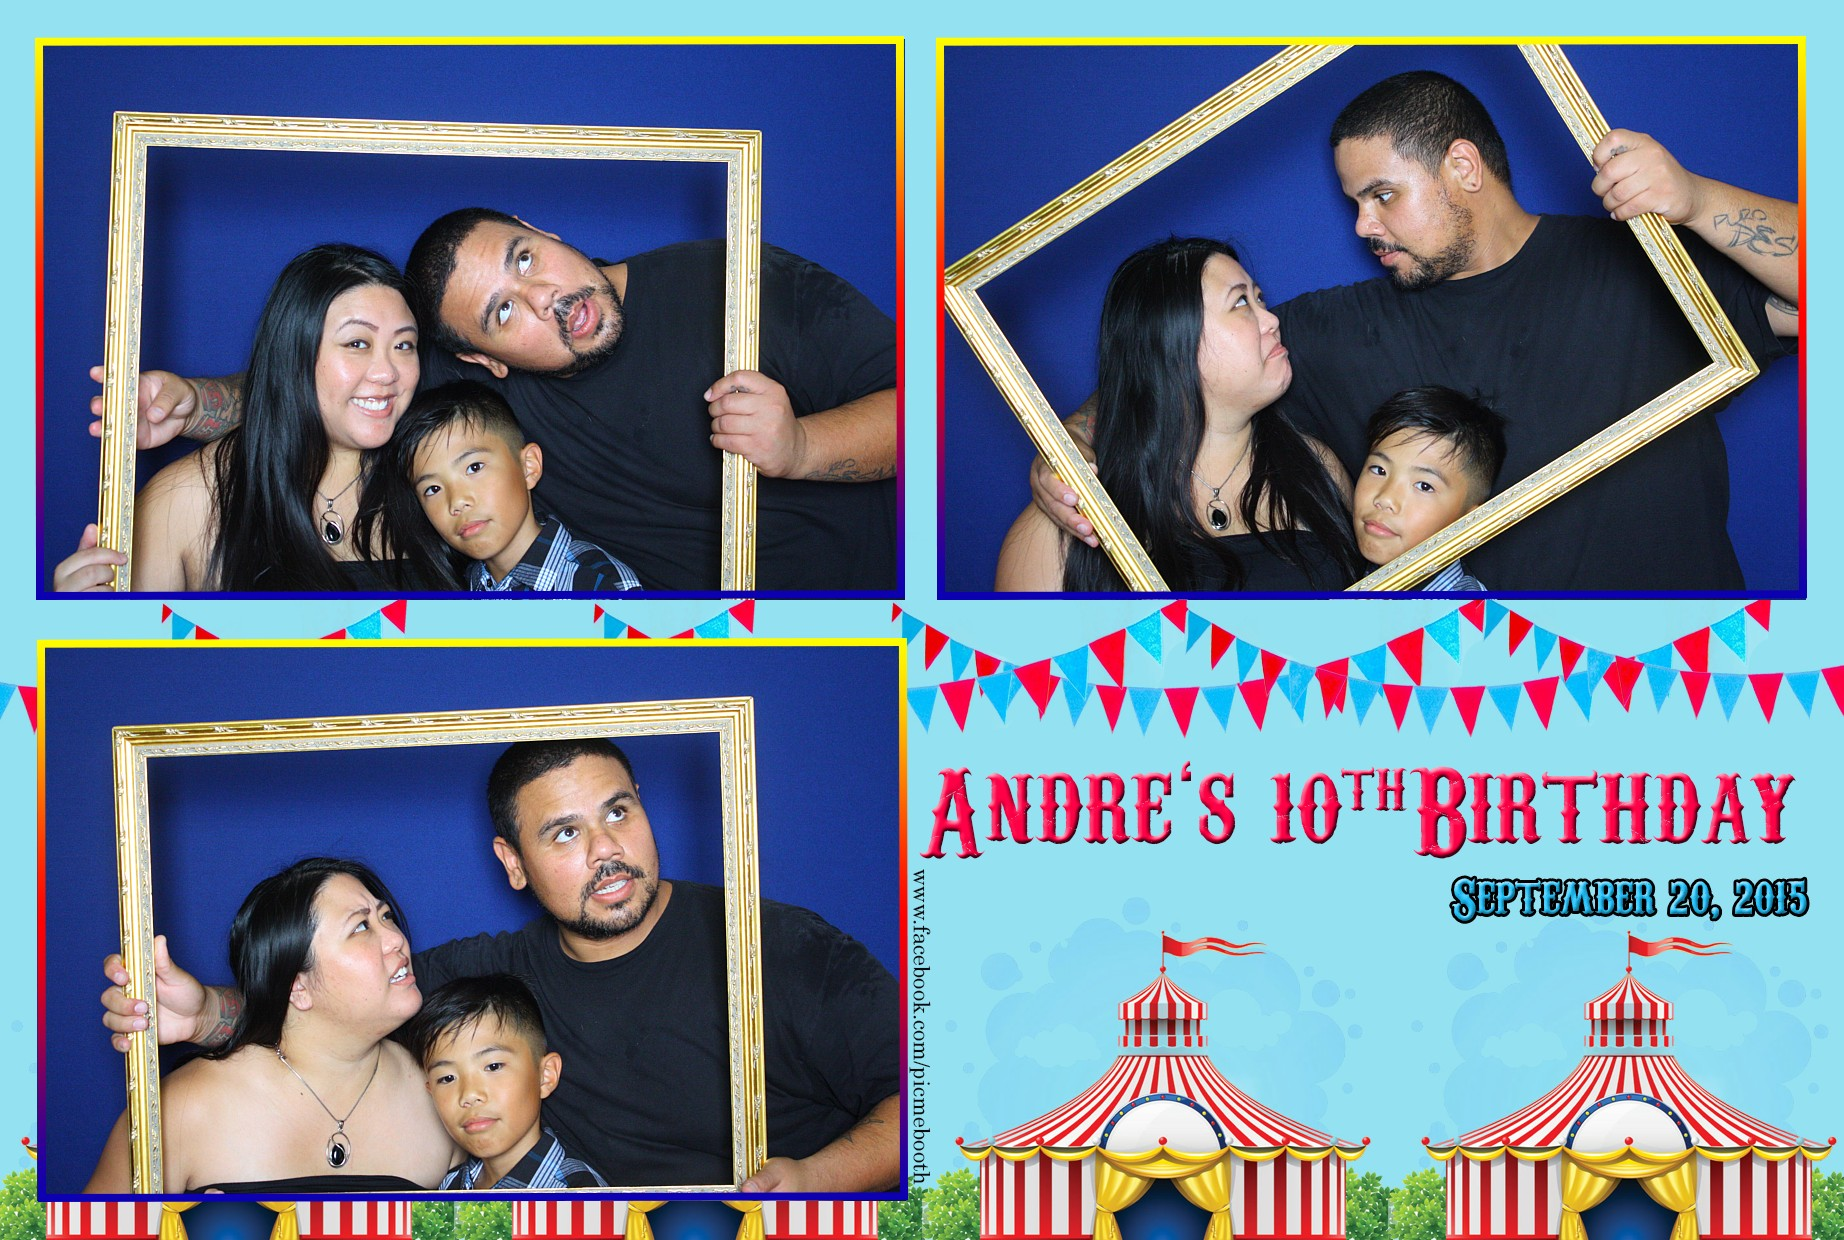 Andre's 10th Birthday